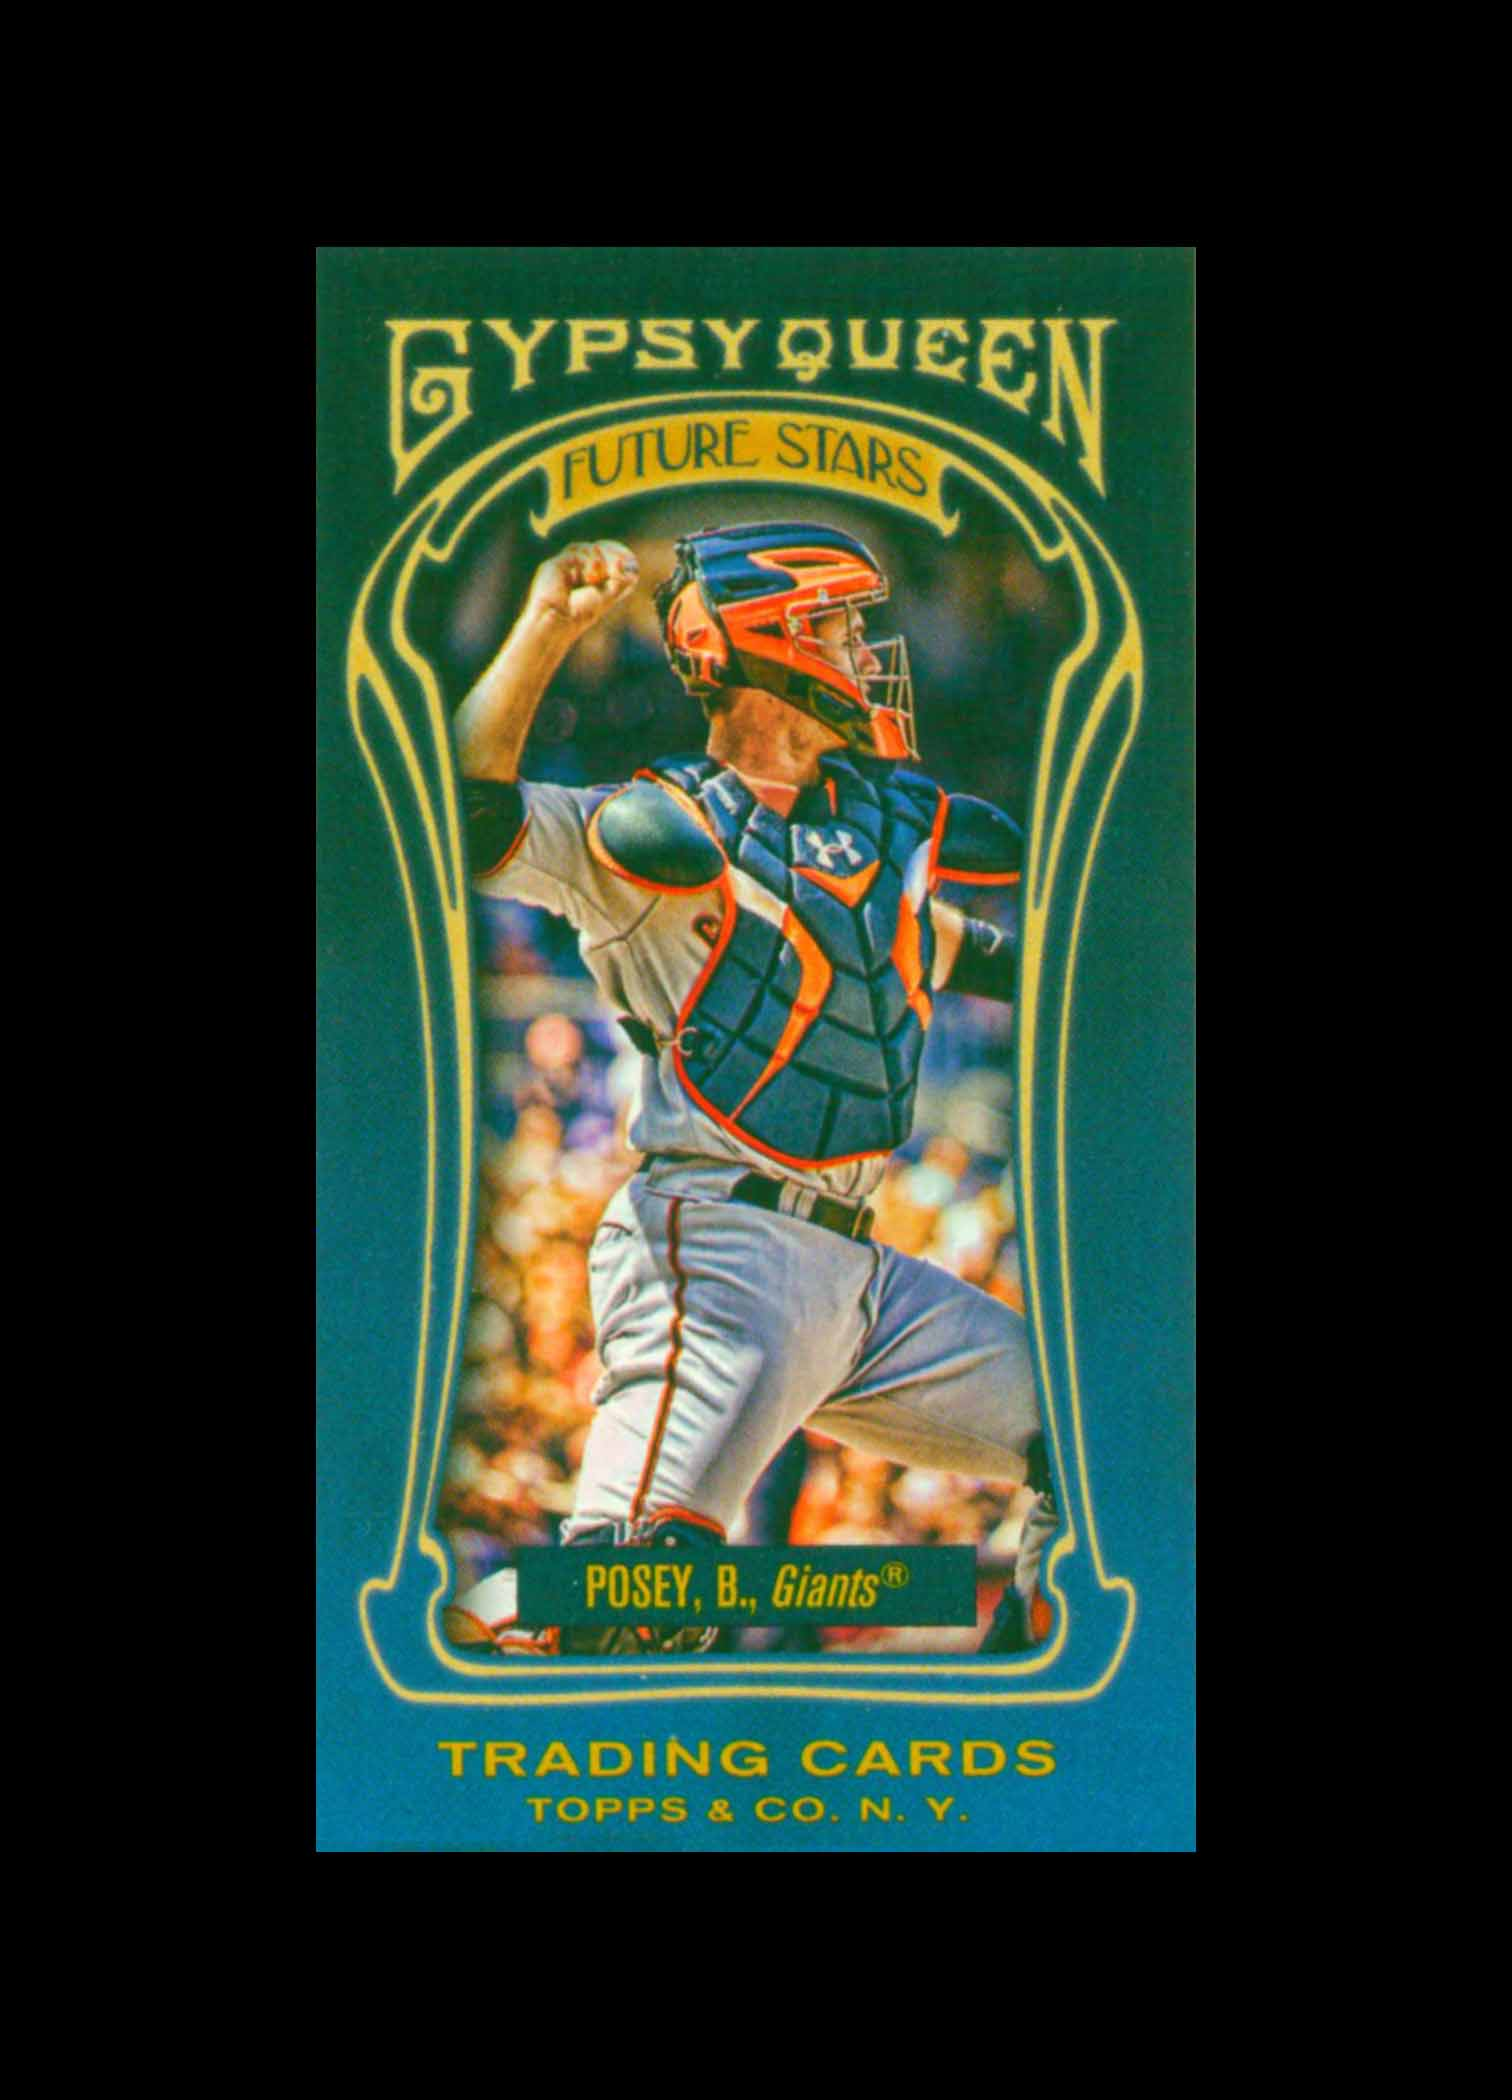 2011 Topps Gypsy Queen Future Stars Mini